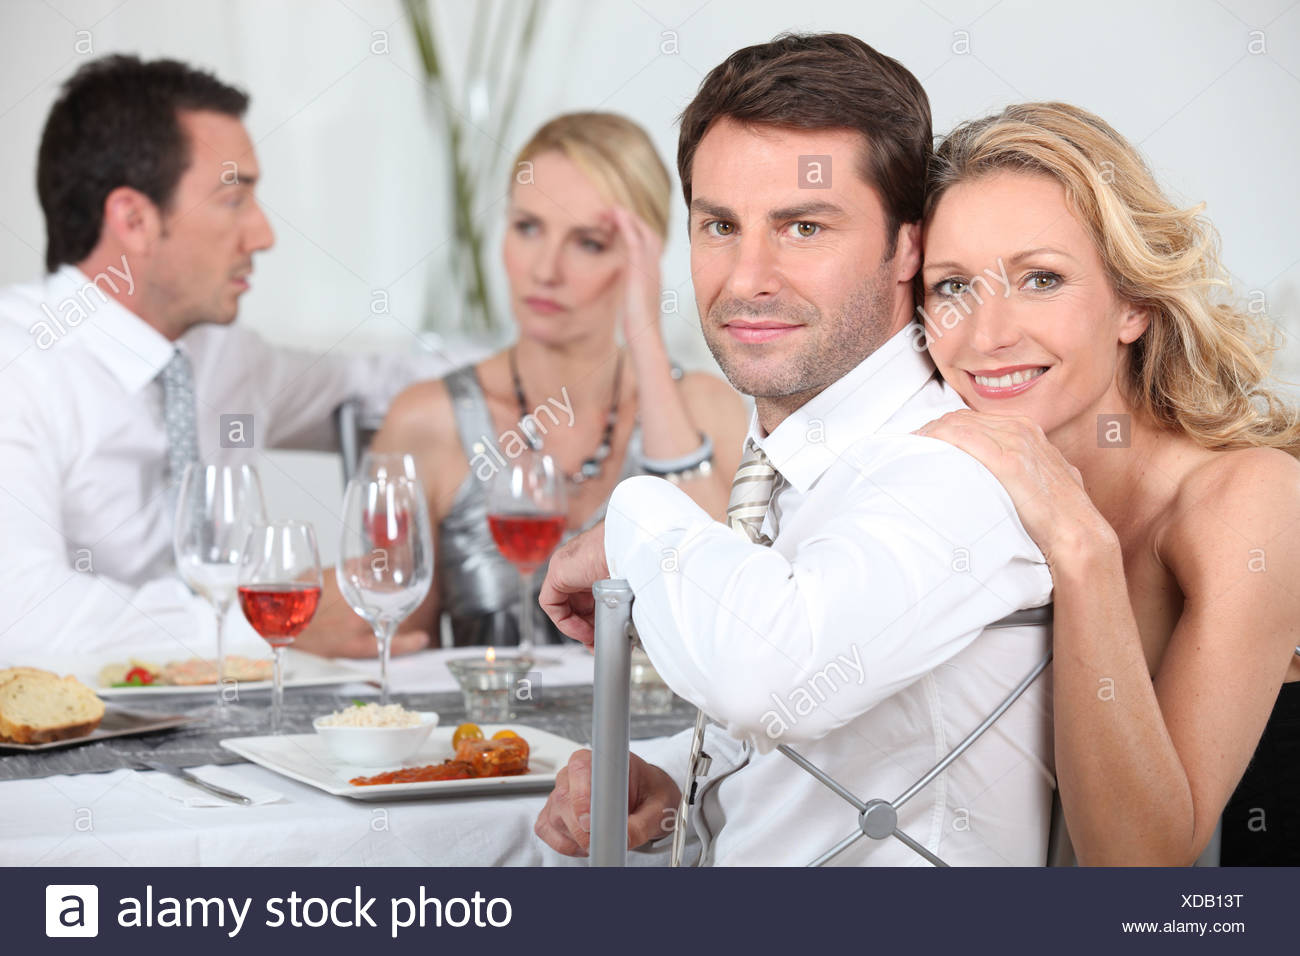 Dinner party discussions - Stock Image